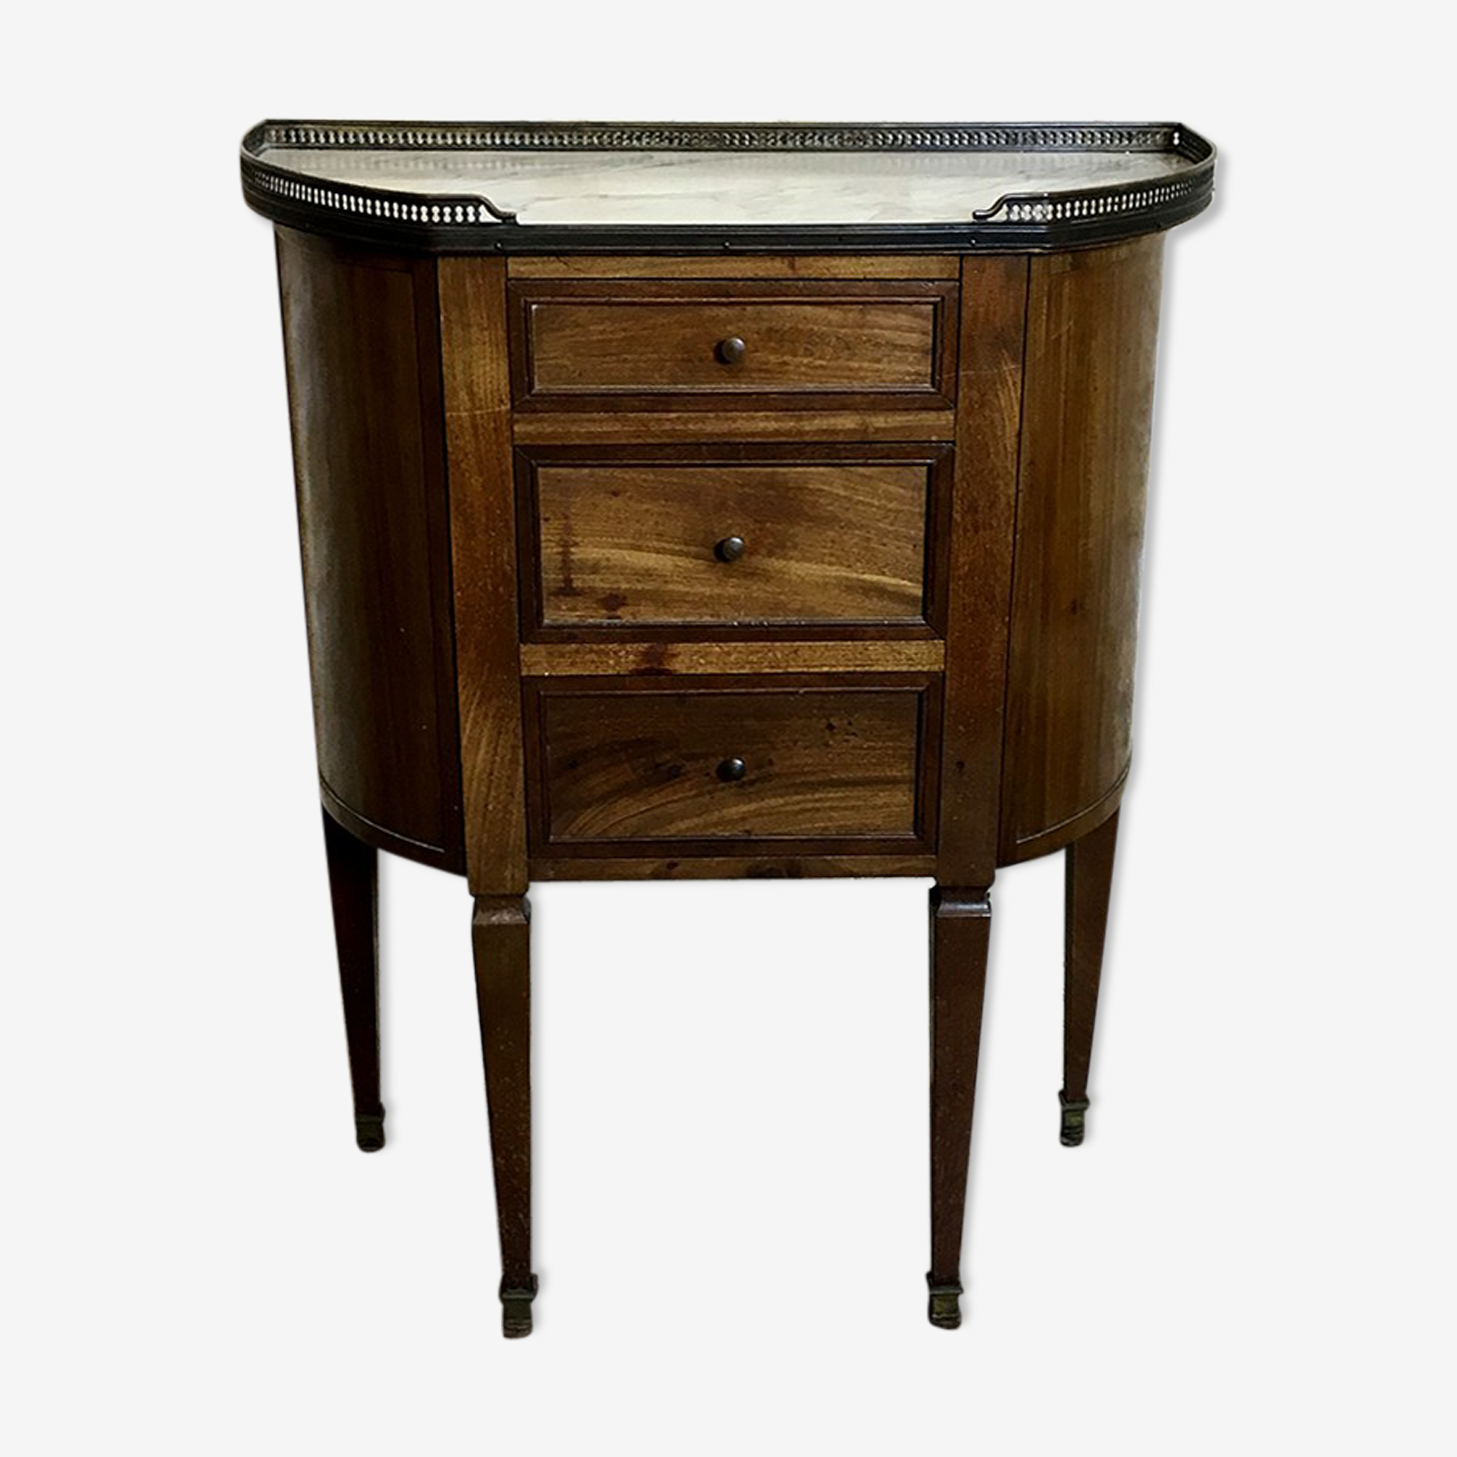 Chest of drawers middle XIX Louis XVI style